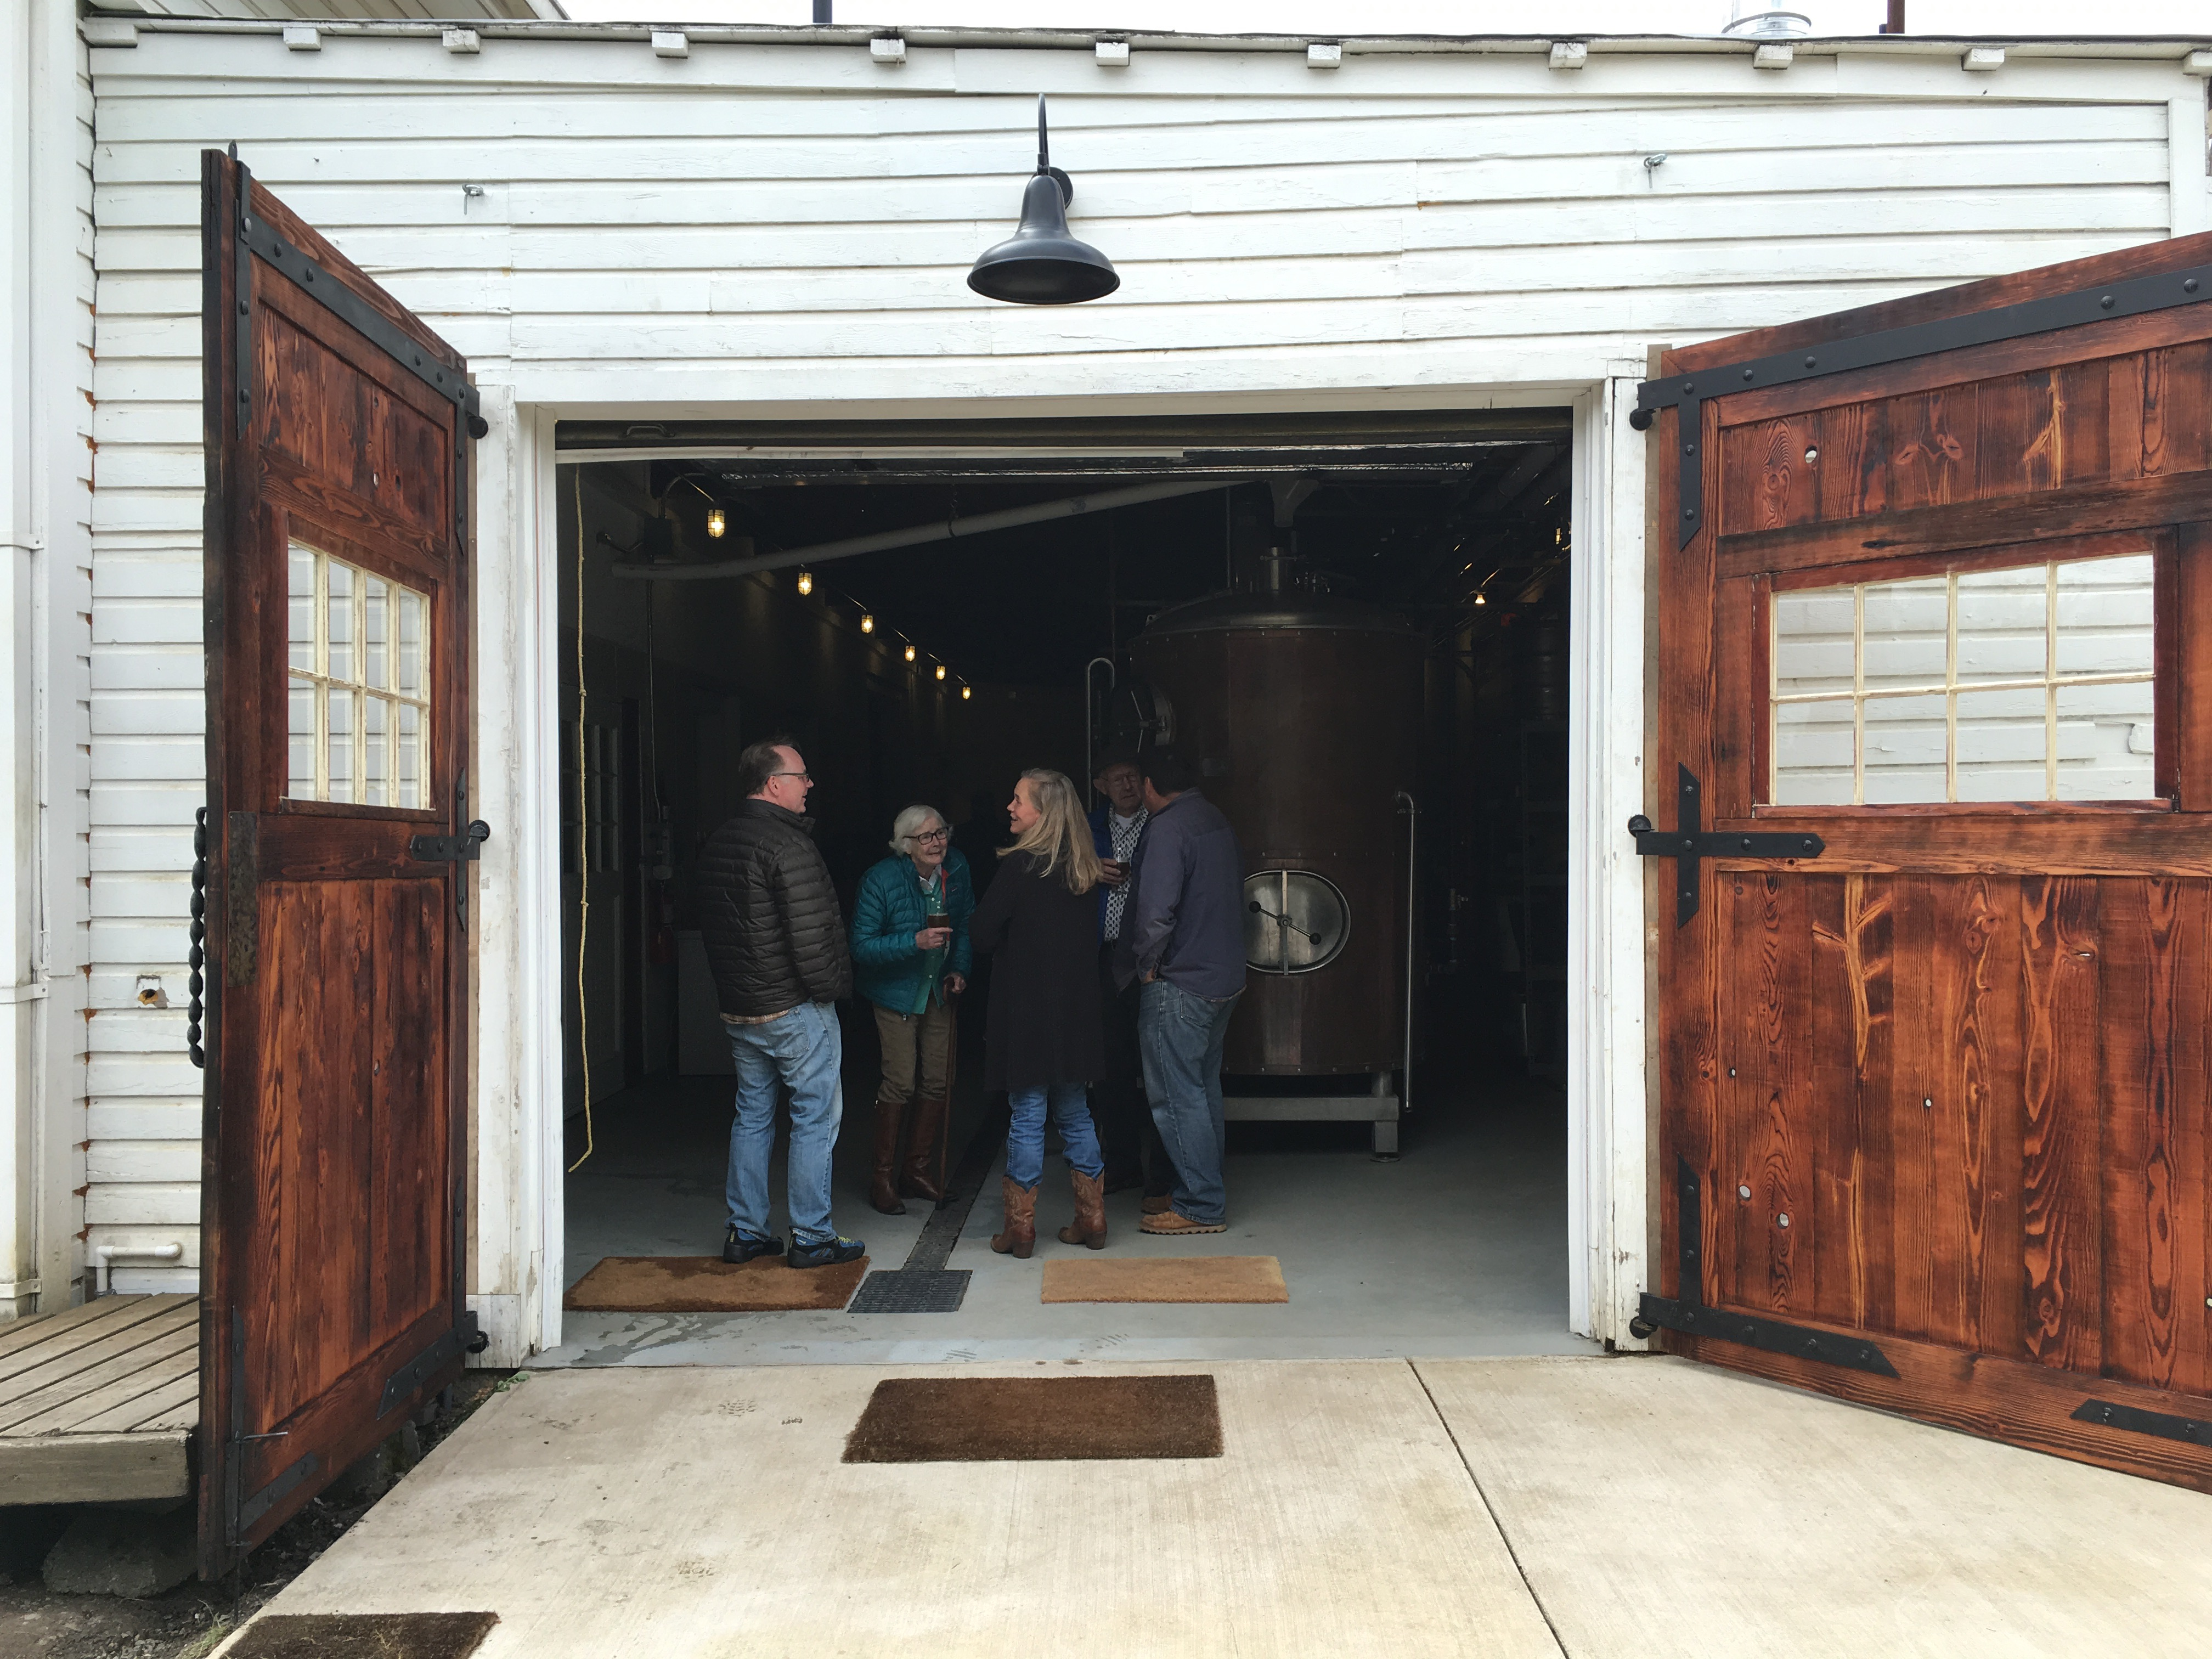 Magnificent brewery entry doors made from reclaimed wood from the Rainer Brewery that lead into Wolves & People Farmhouse Brewery.